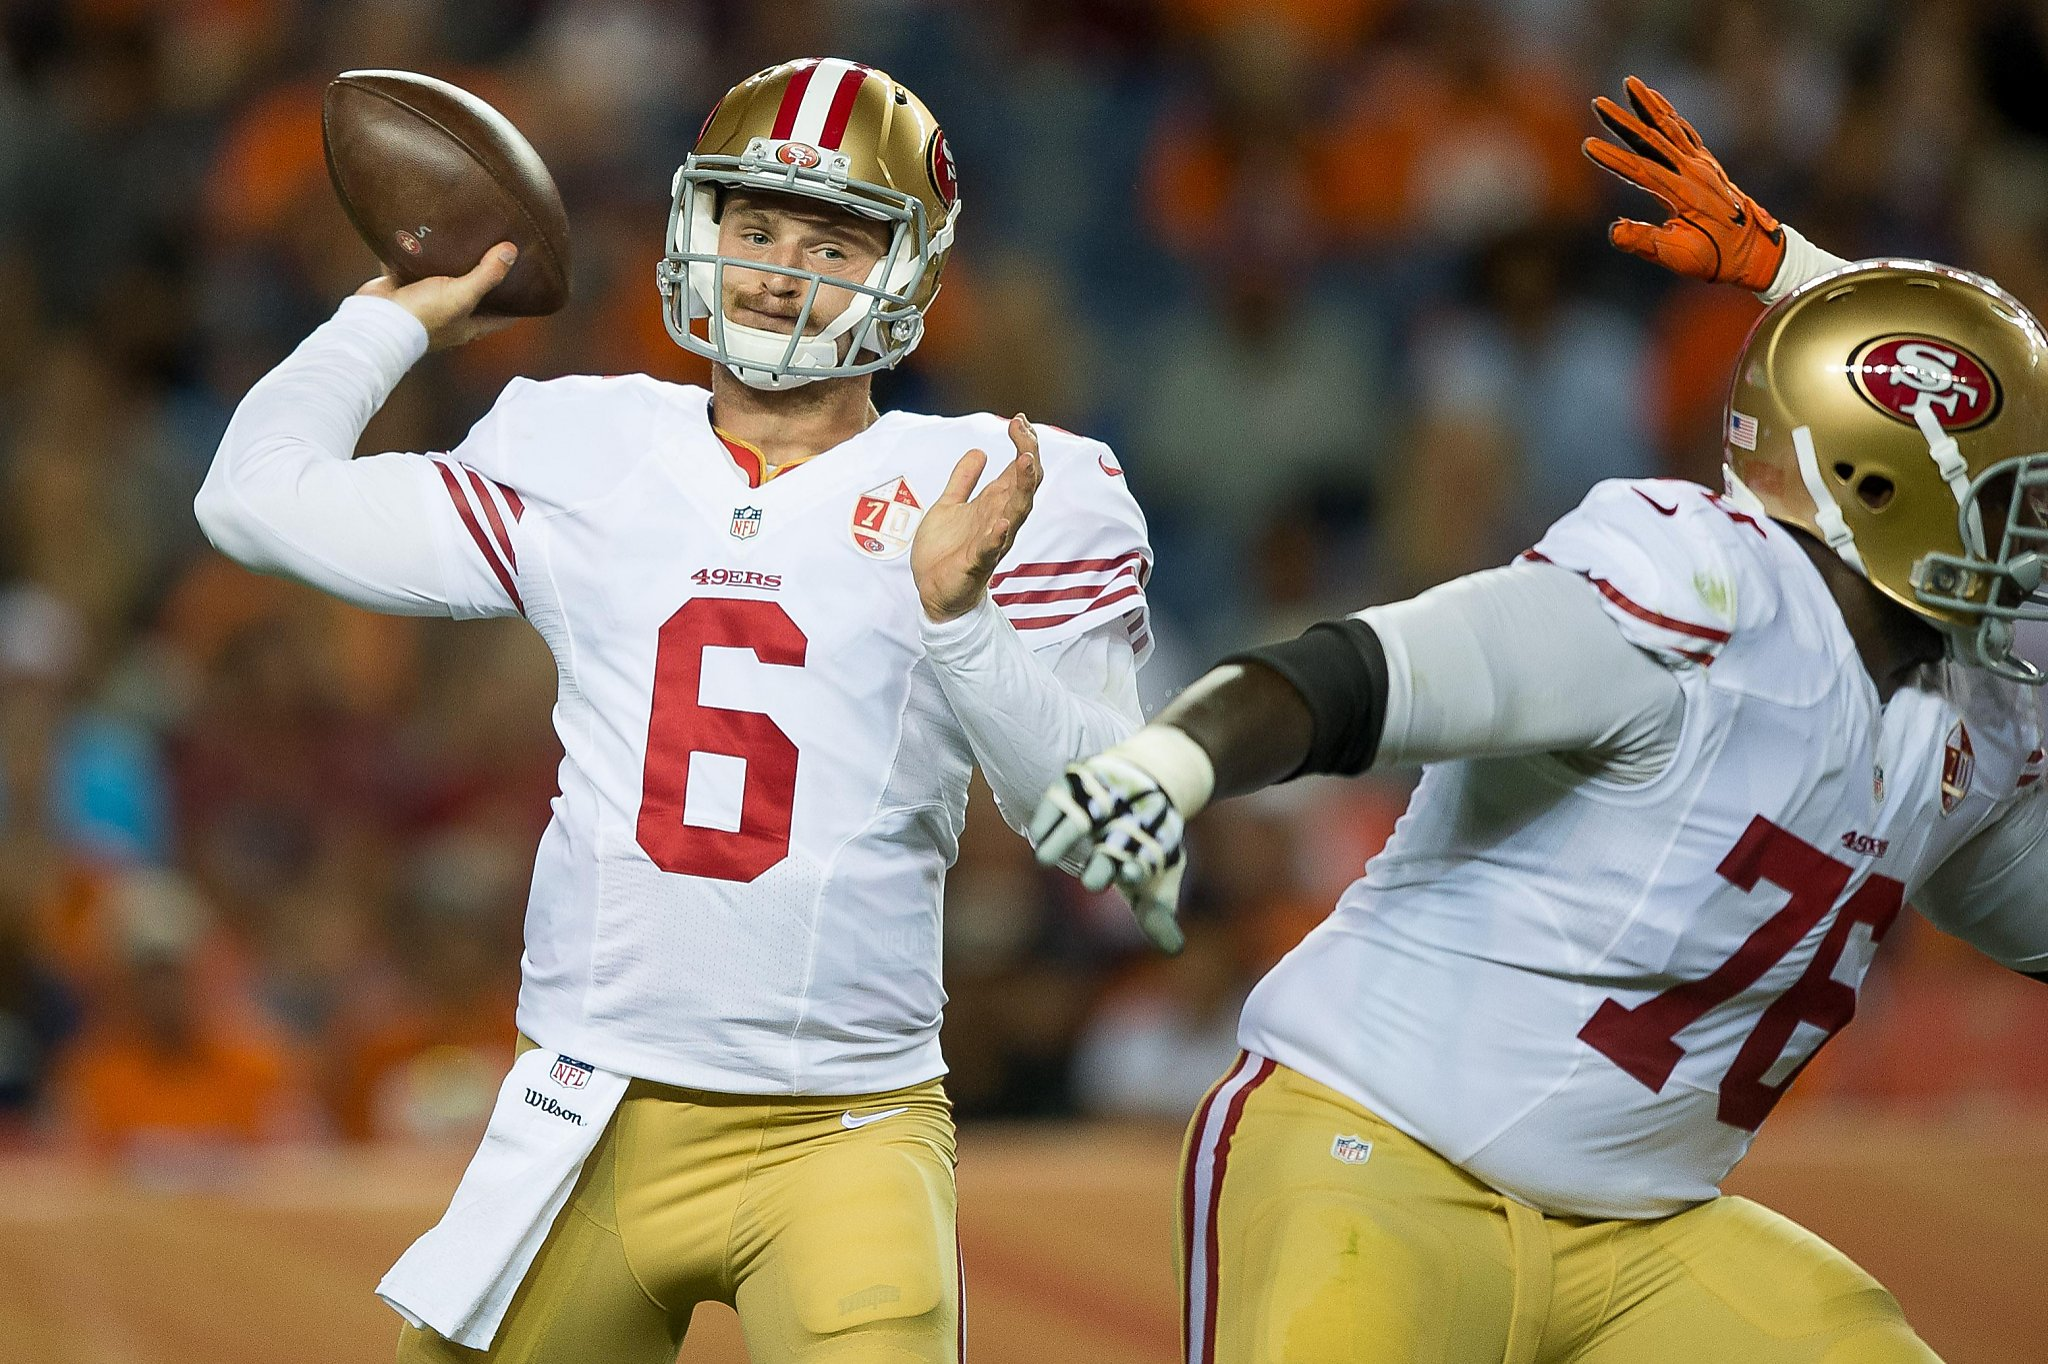 49ers rookie QB Driskel improves after 'dirtball' debut